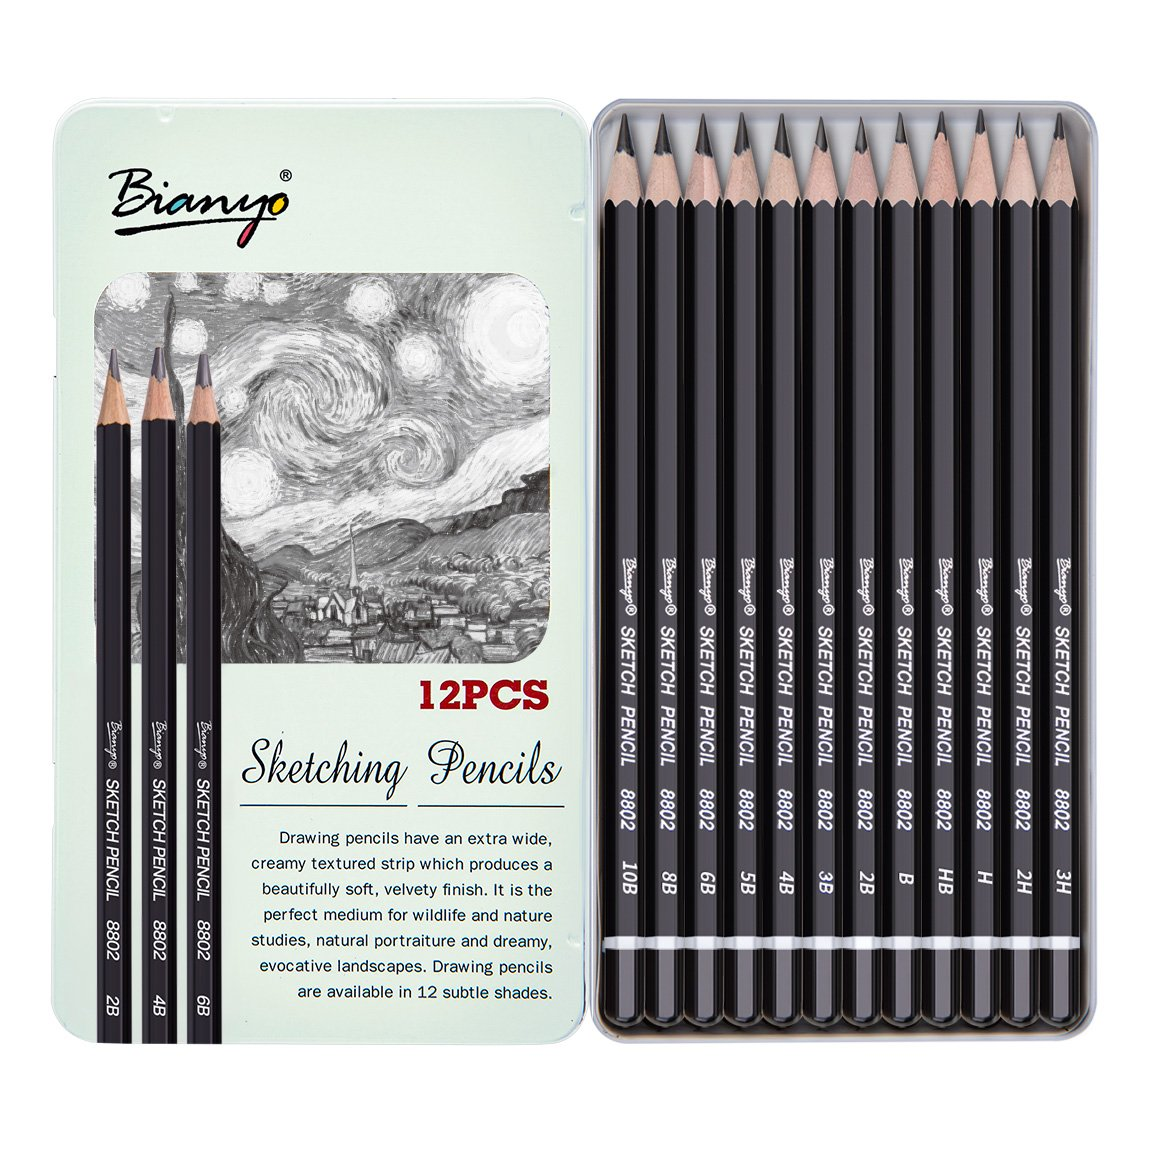 Amazon com bianyo sketch pencil drawing pencils art pencils drawing kit12 piece 3h 2h h hb b 2b 3b 4b 5b 6b 8b 10b